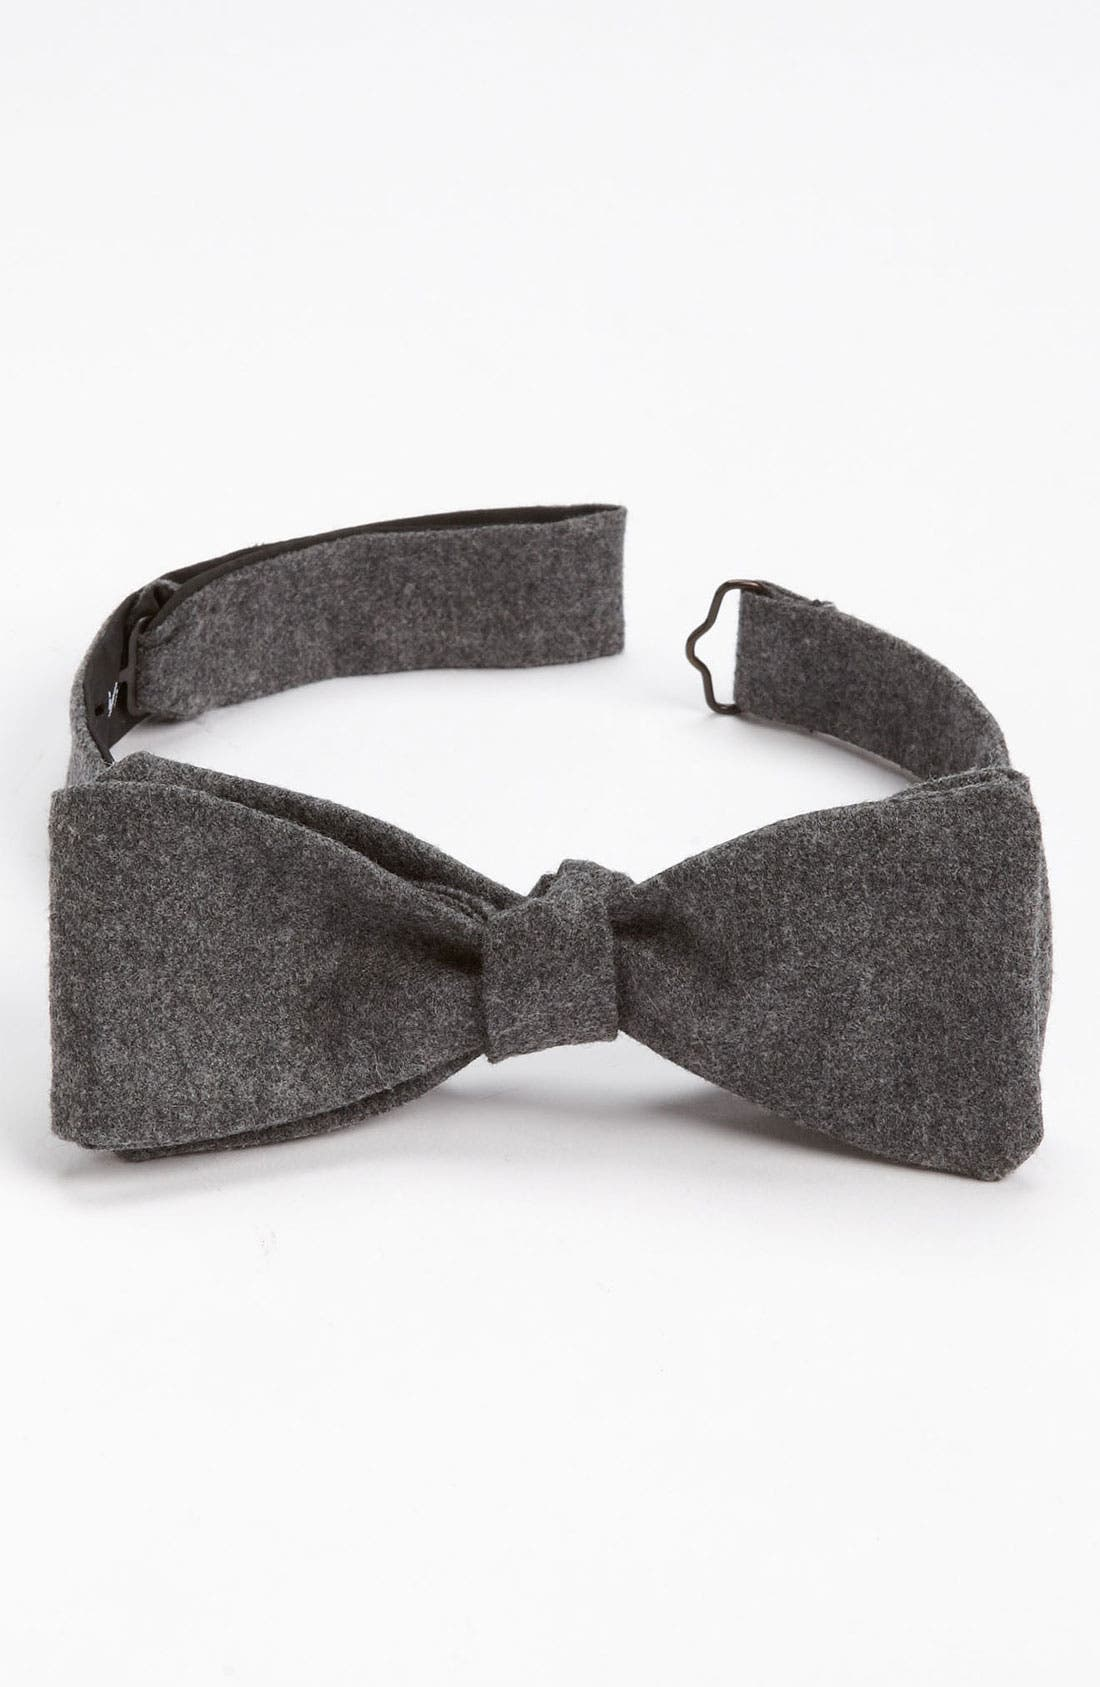 Main Image - David Hart Wool Bow Tie (Online Exclusive)